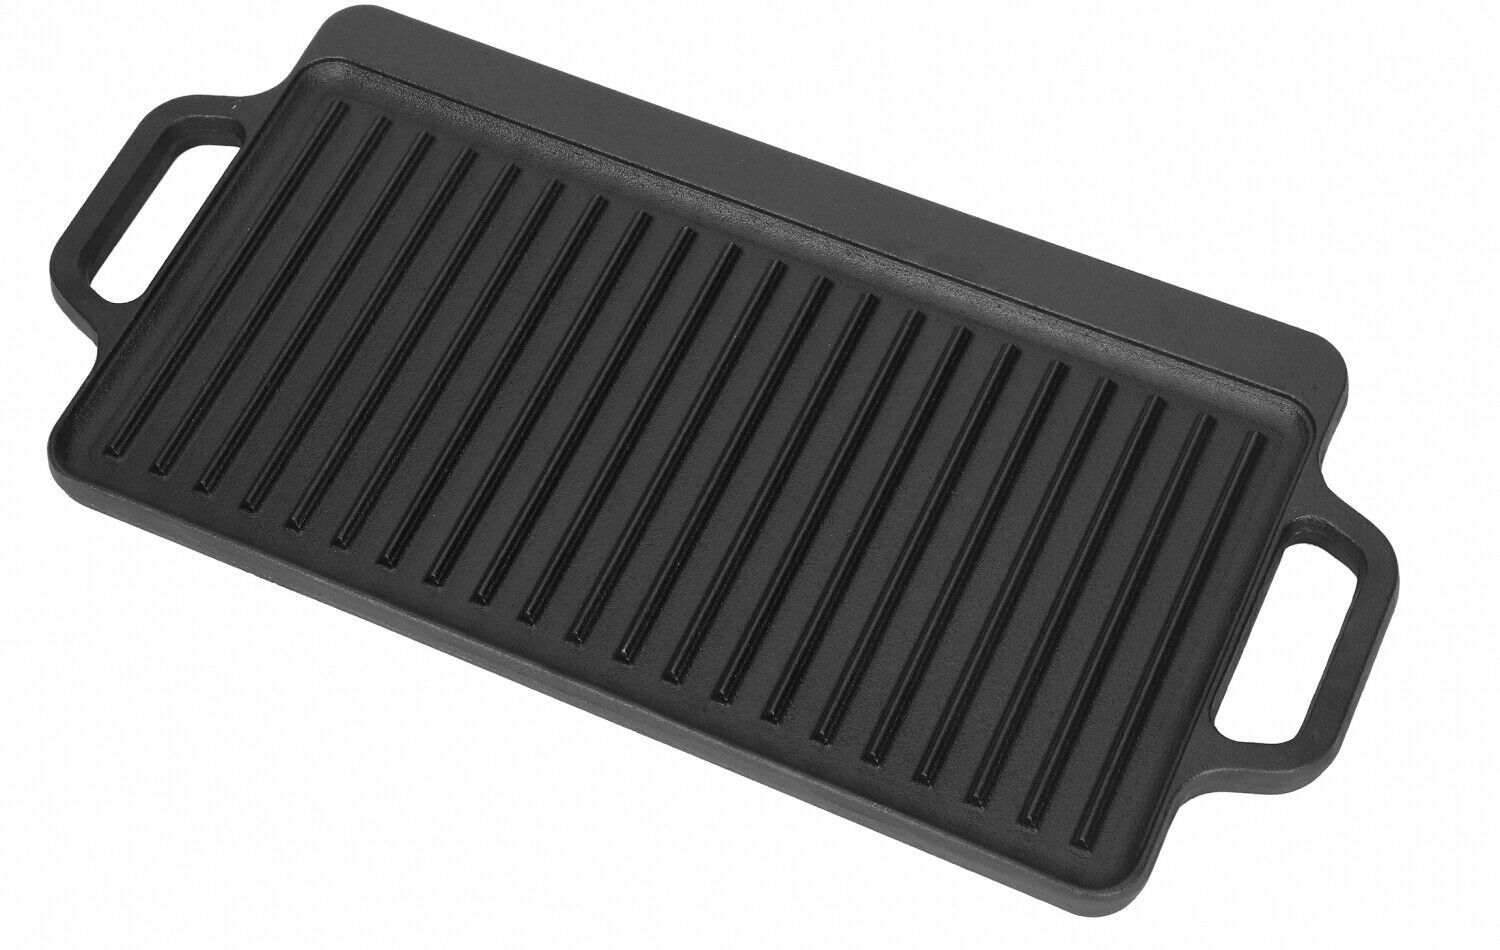 Cast Iron Reversible Grill Griddle 17 X 9 Pan Hamburger Steak Stove Top Fry Grill Pans Ideas Of Grill Pans Grillpans With Images Cast Iron Griddle Griddles Grill Pan